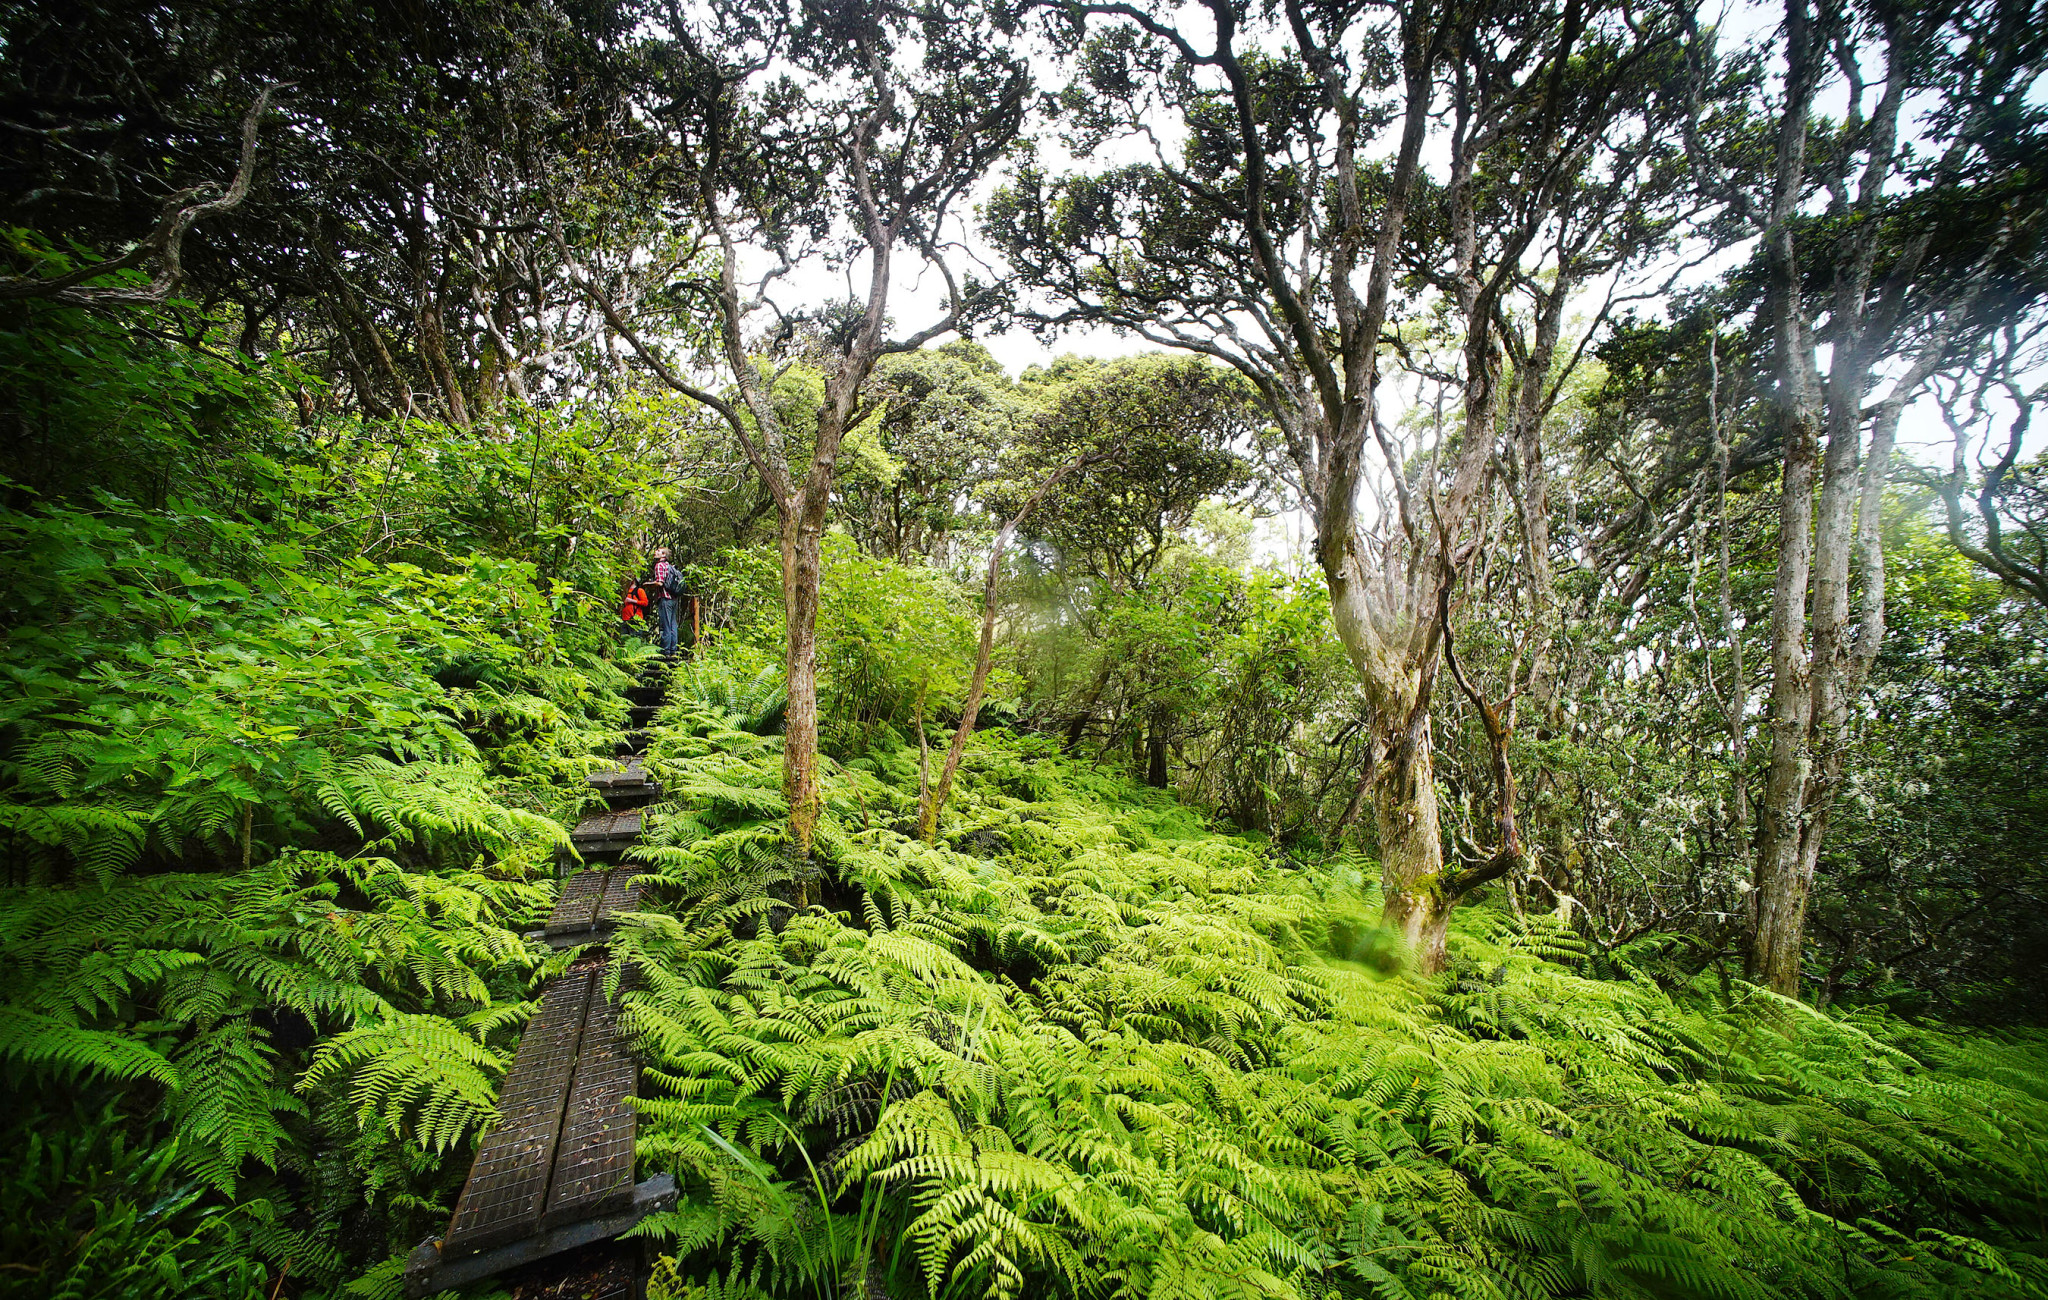 <p>Following a wooden elevated walkway within anative forest, hikers wanderedbeneathan open canopy of ohia lehua trees.</p>